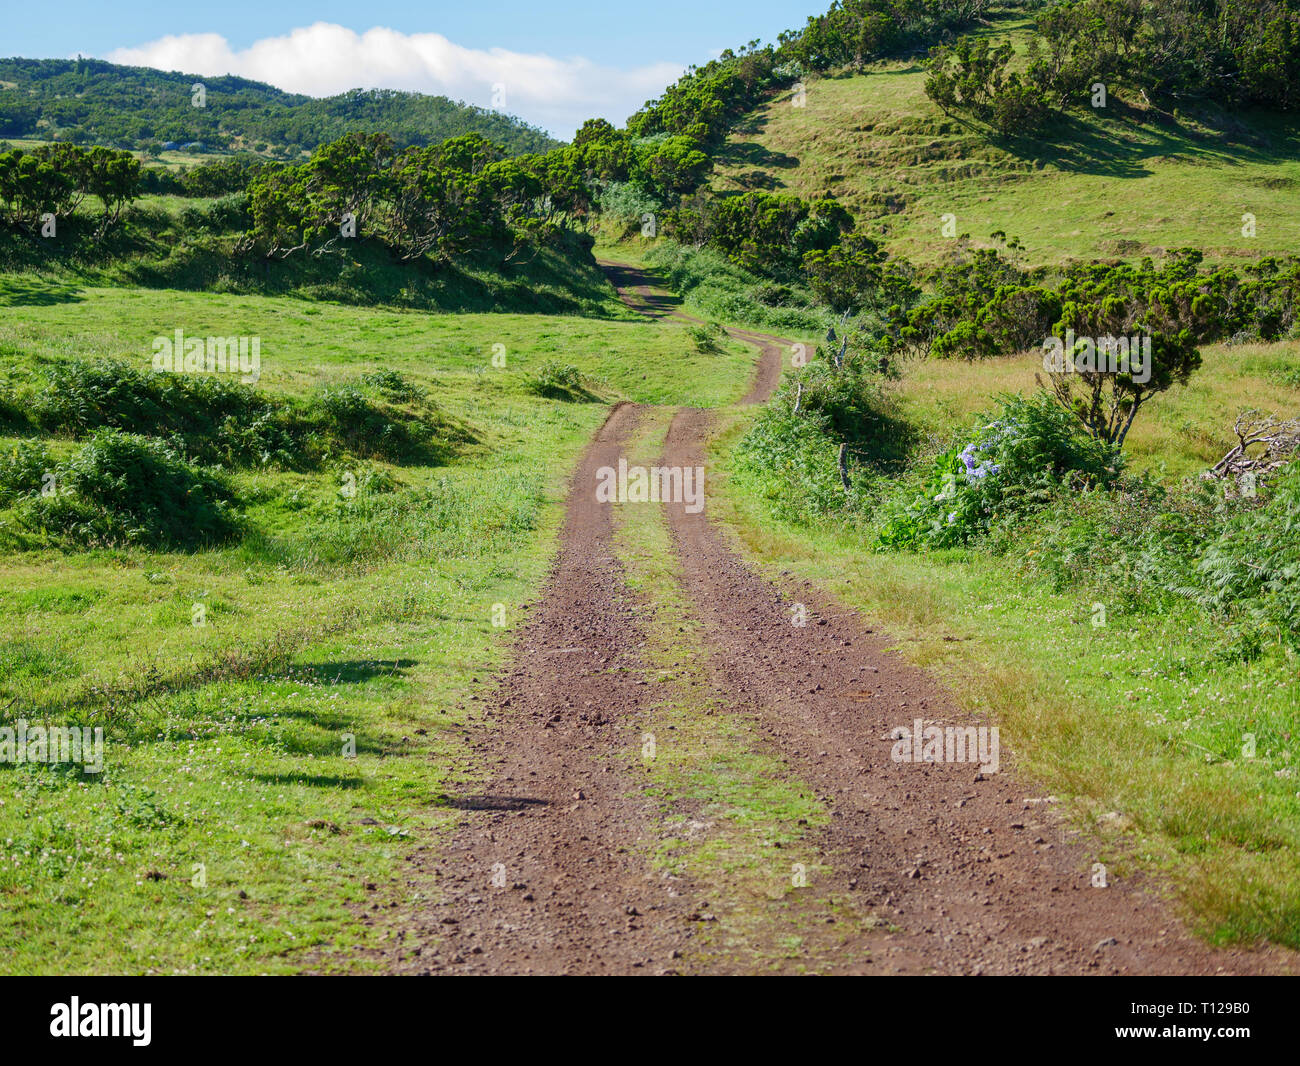 Image of a track across the fields leading to a vanishing point in the image center - Stock Image